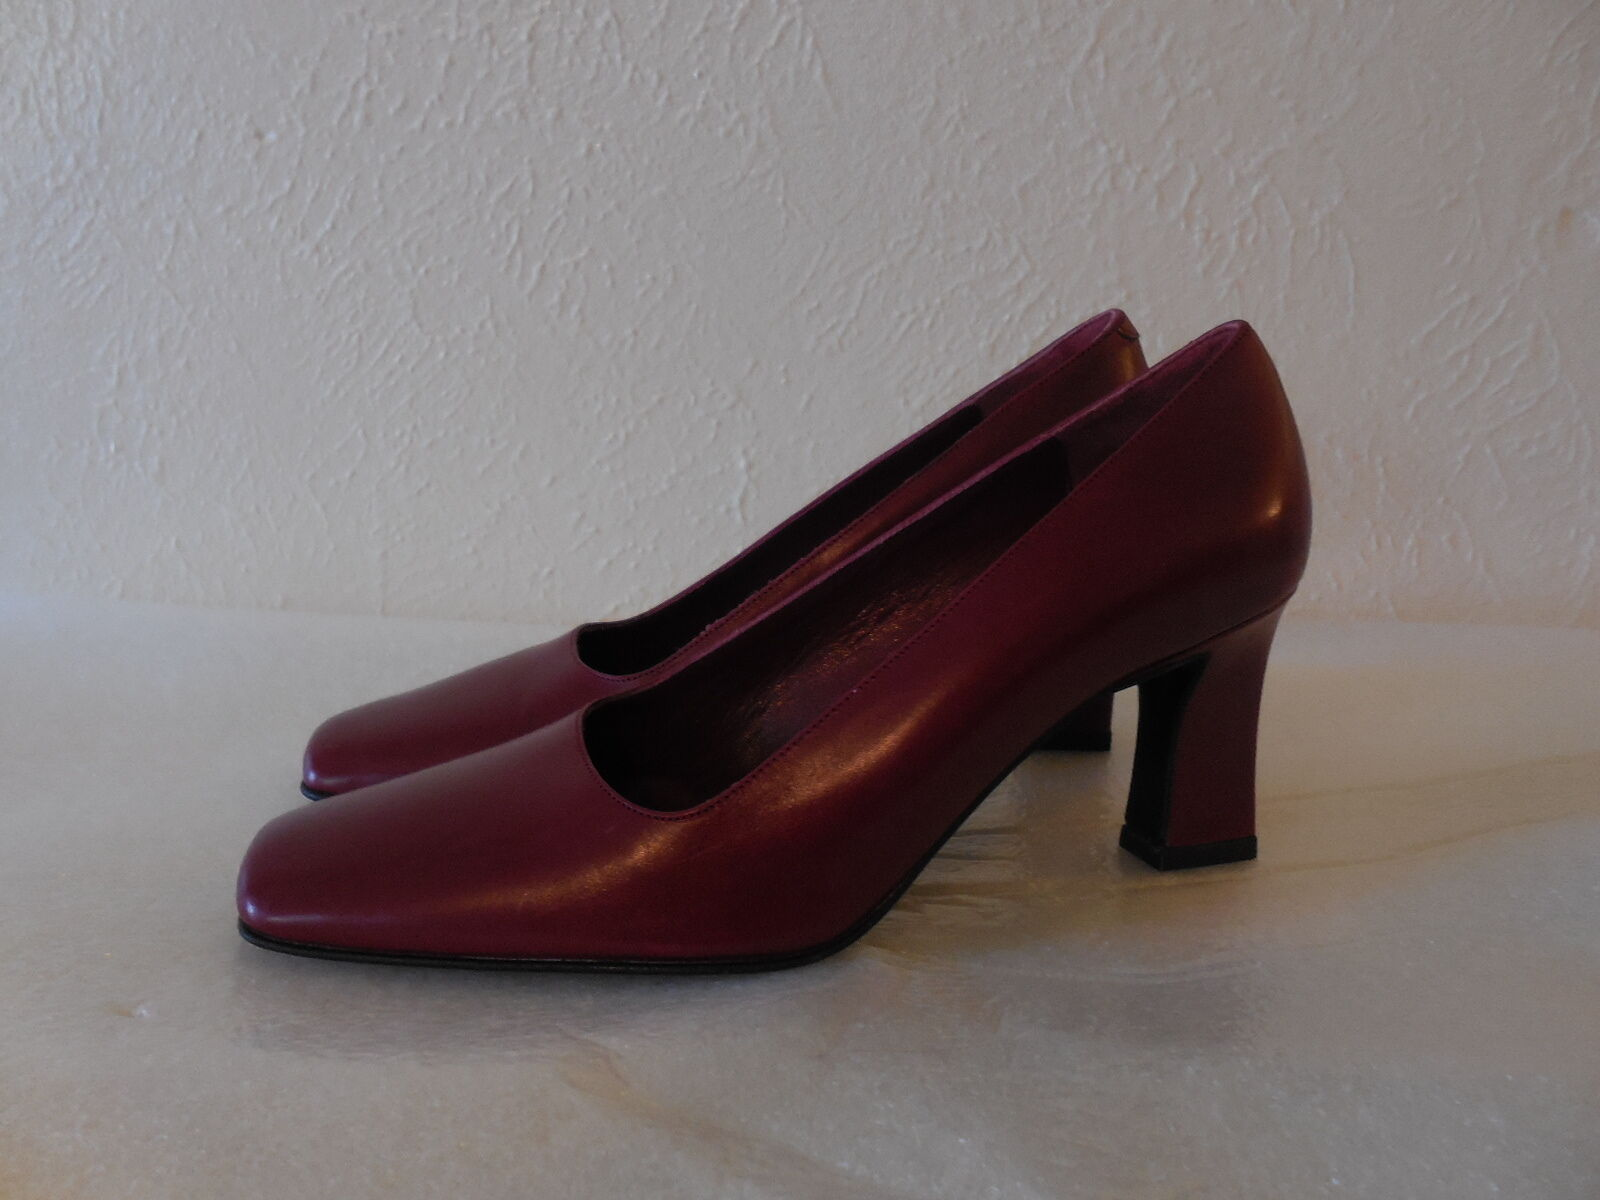 NEW Sz.5 NORDSTROM Leather Heel Burgundy Shoes - ITALY